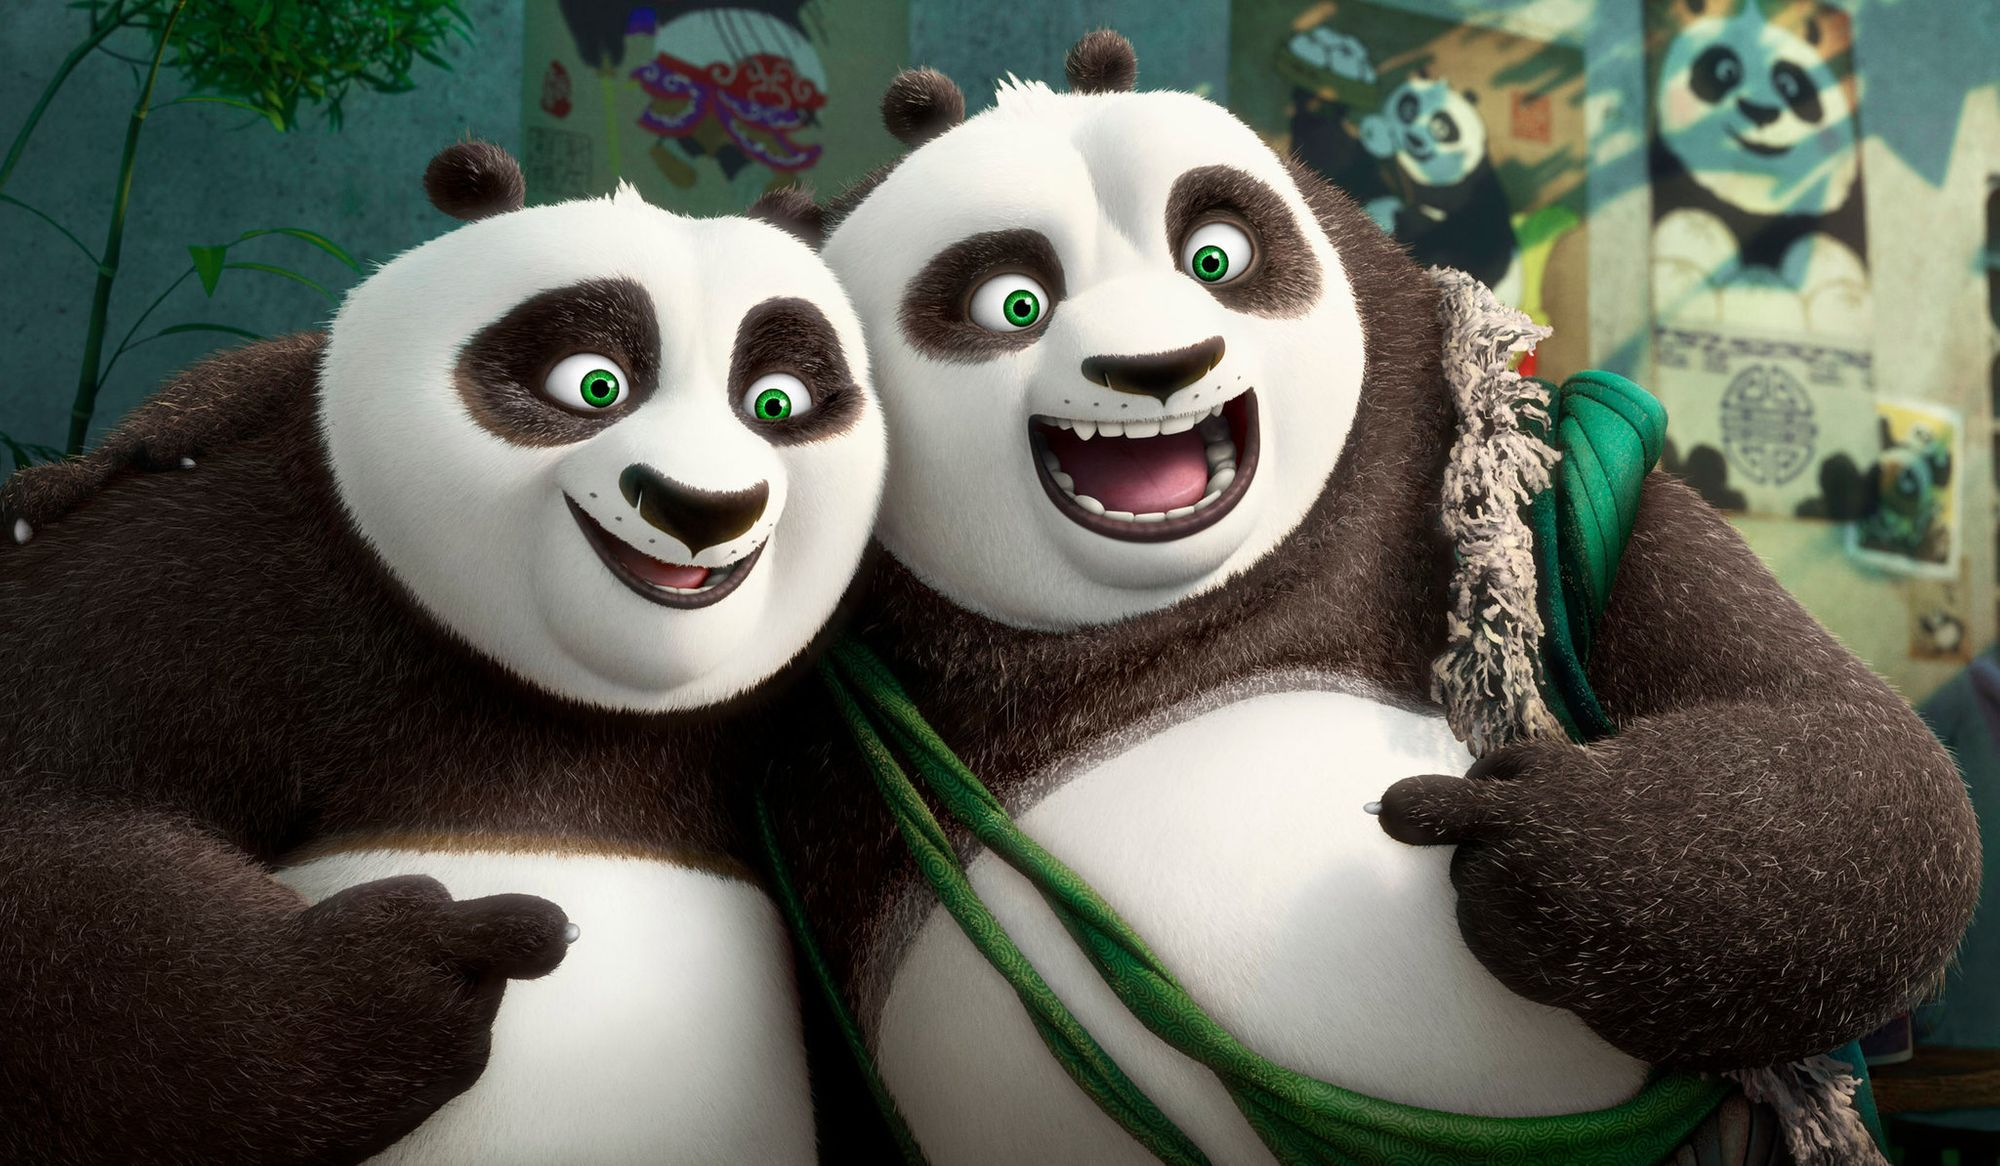 How to Watch Kung Fu Panda 3 on Netflix - Best VPNs to Use